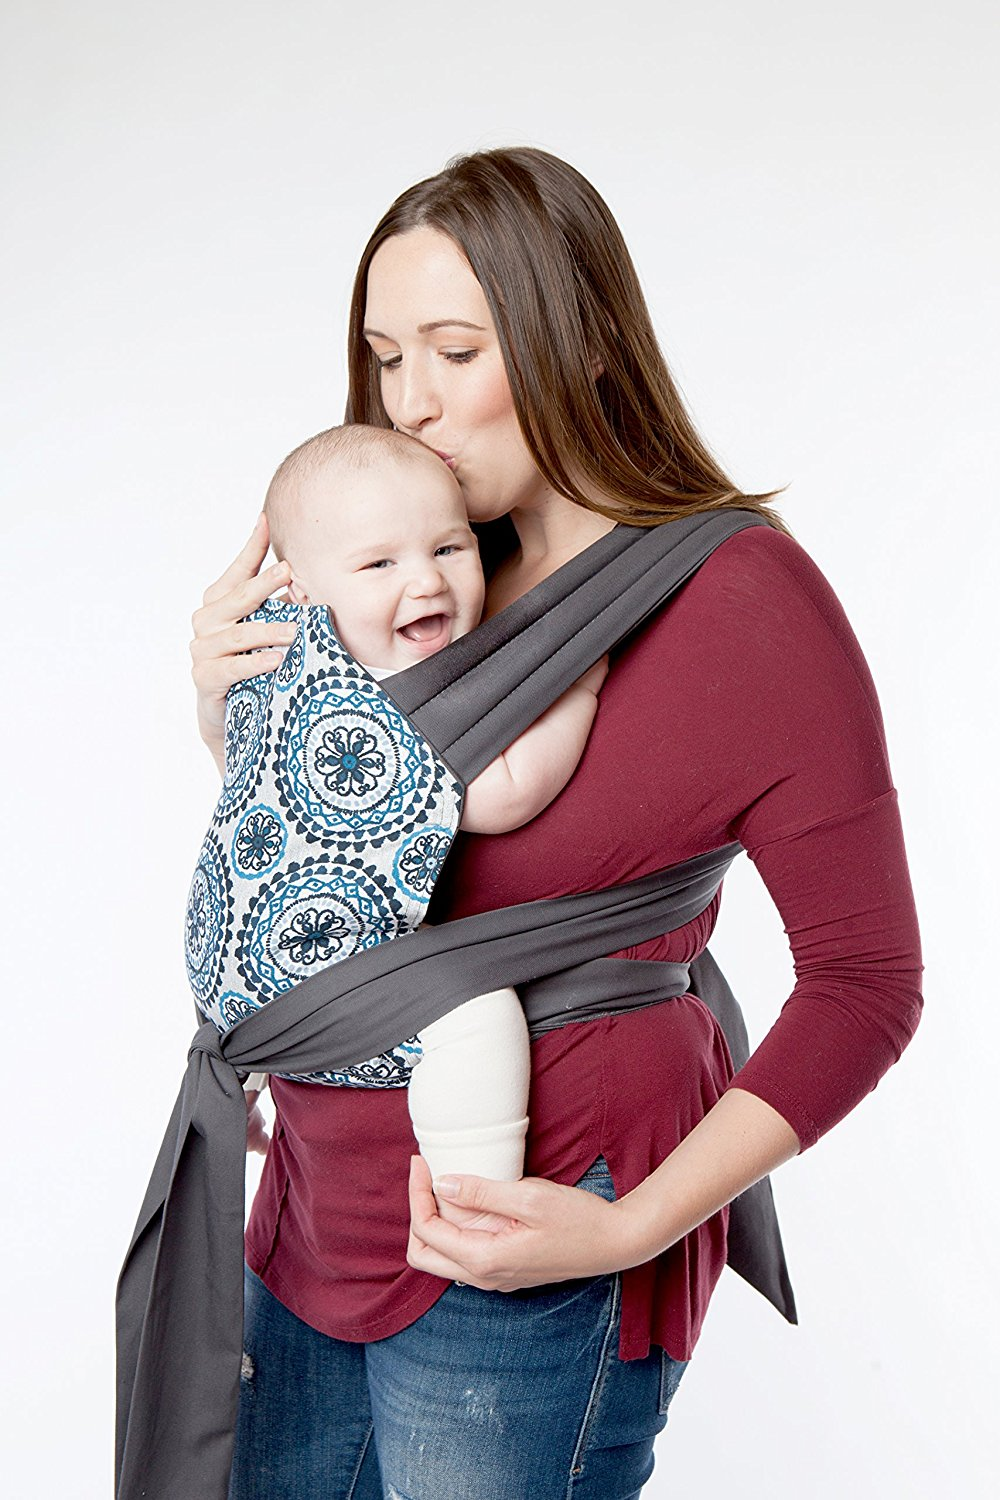 Babyhawk Carrier Reviews Baby Carrier Review Guide